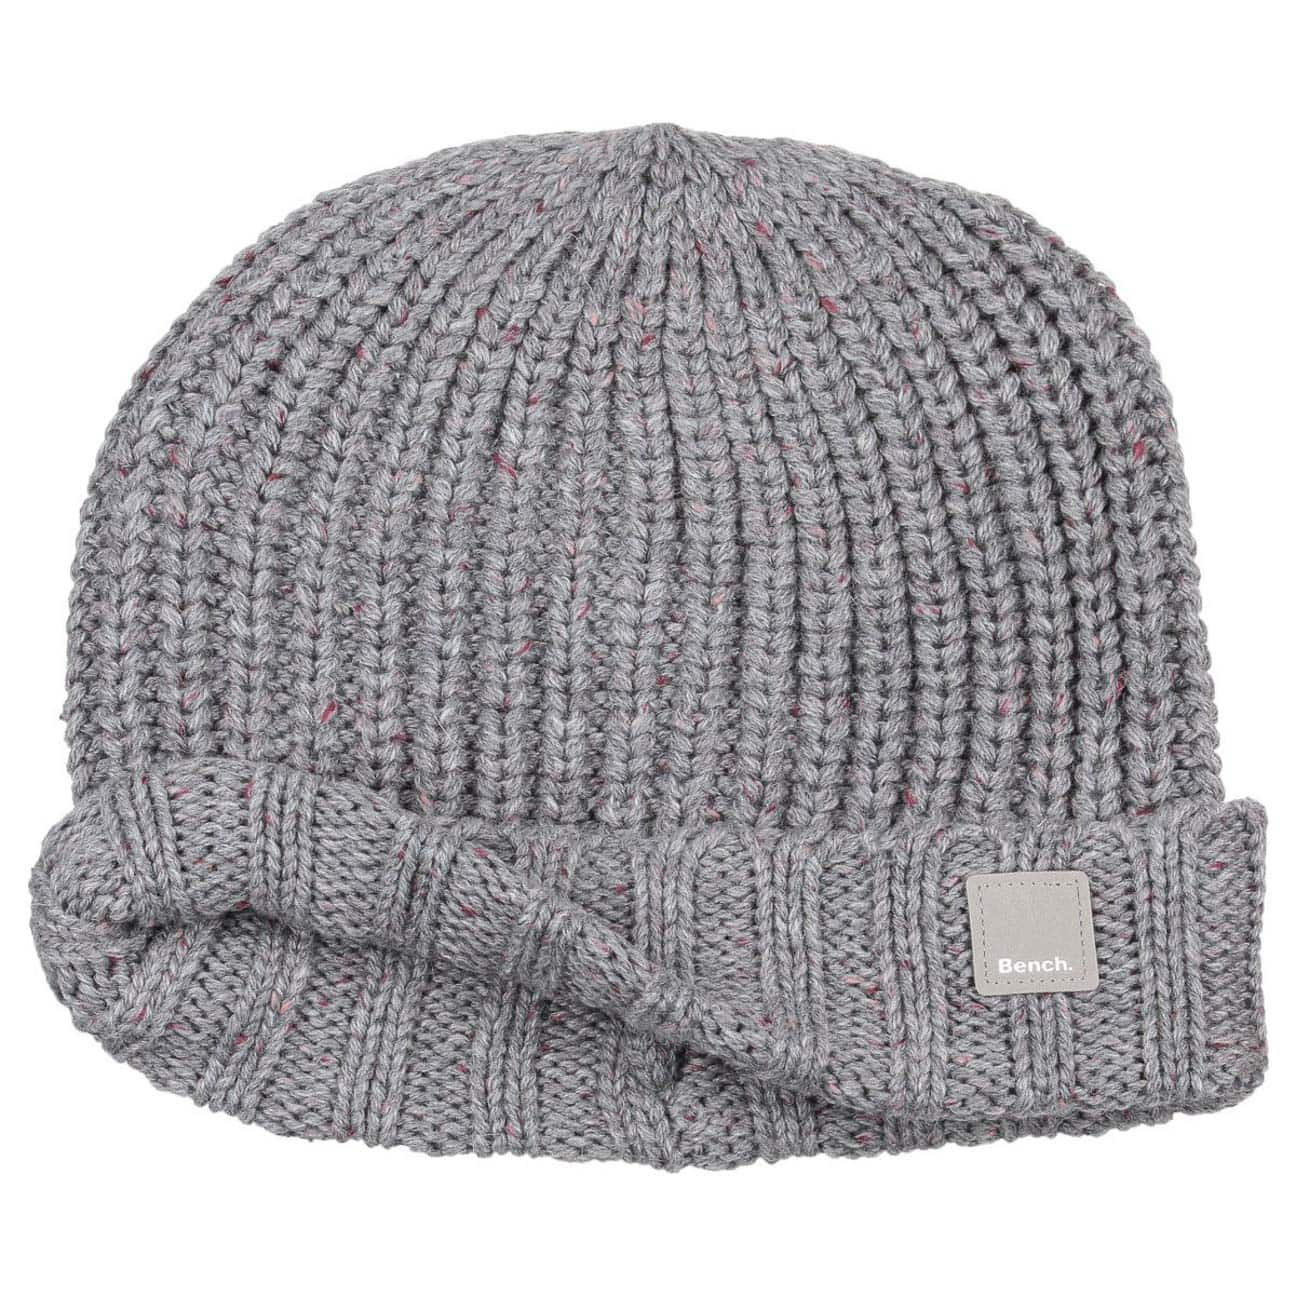 73fec32f Urbanzen Turn Up Knit Hat by Bench